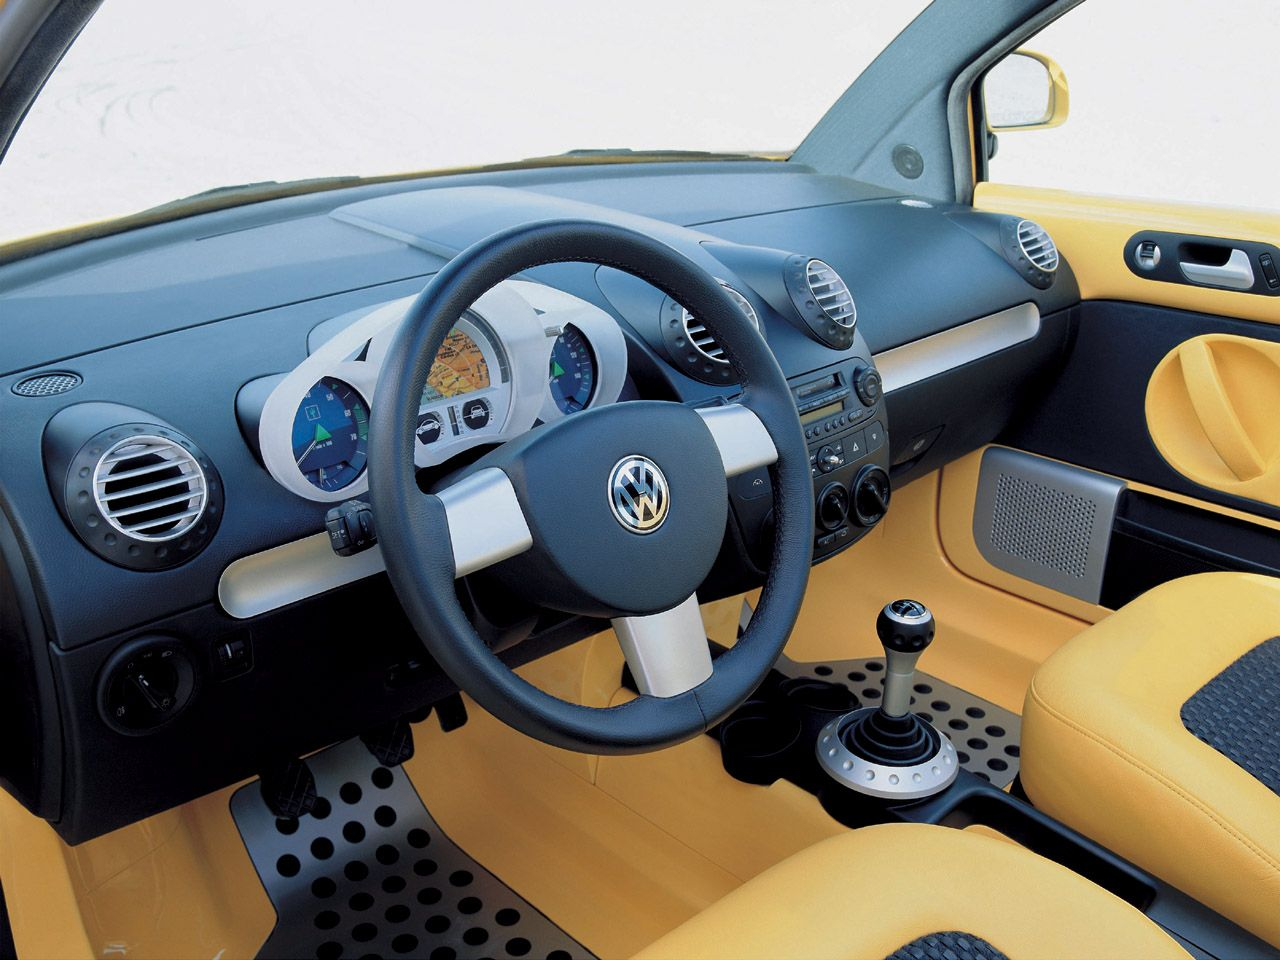 1998 Volkswagen S New Beetle Vw Yellow And Black And Grey Interior Volkswagen New Beetle Vw New Beetle Volkswagen Beetle